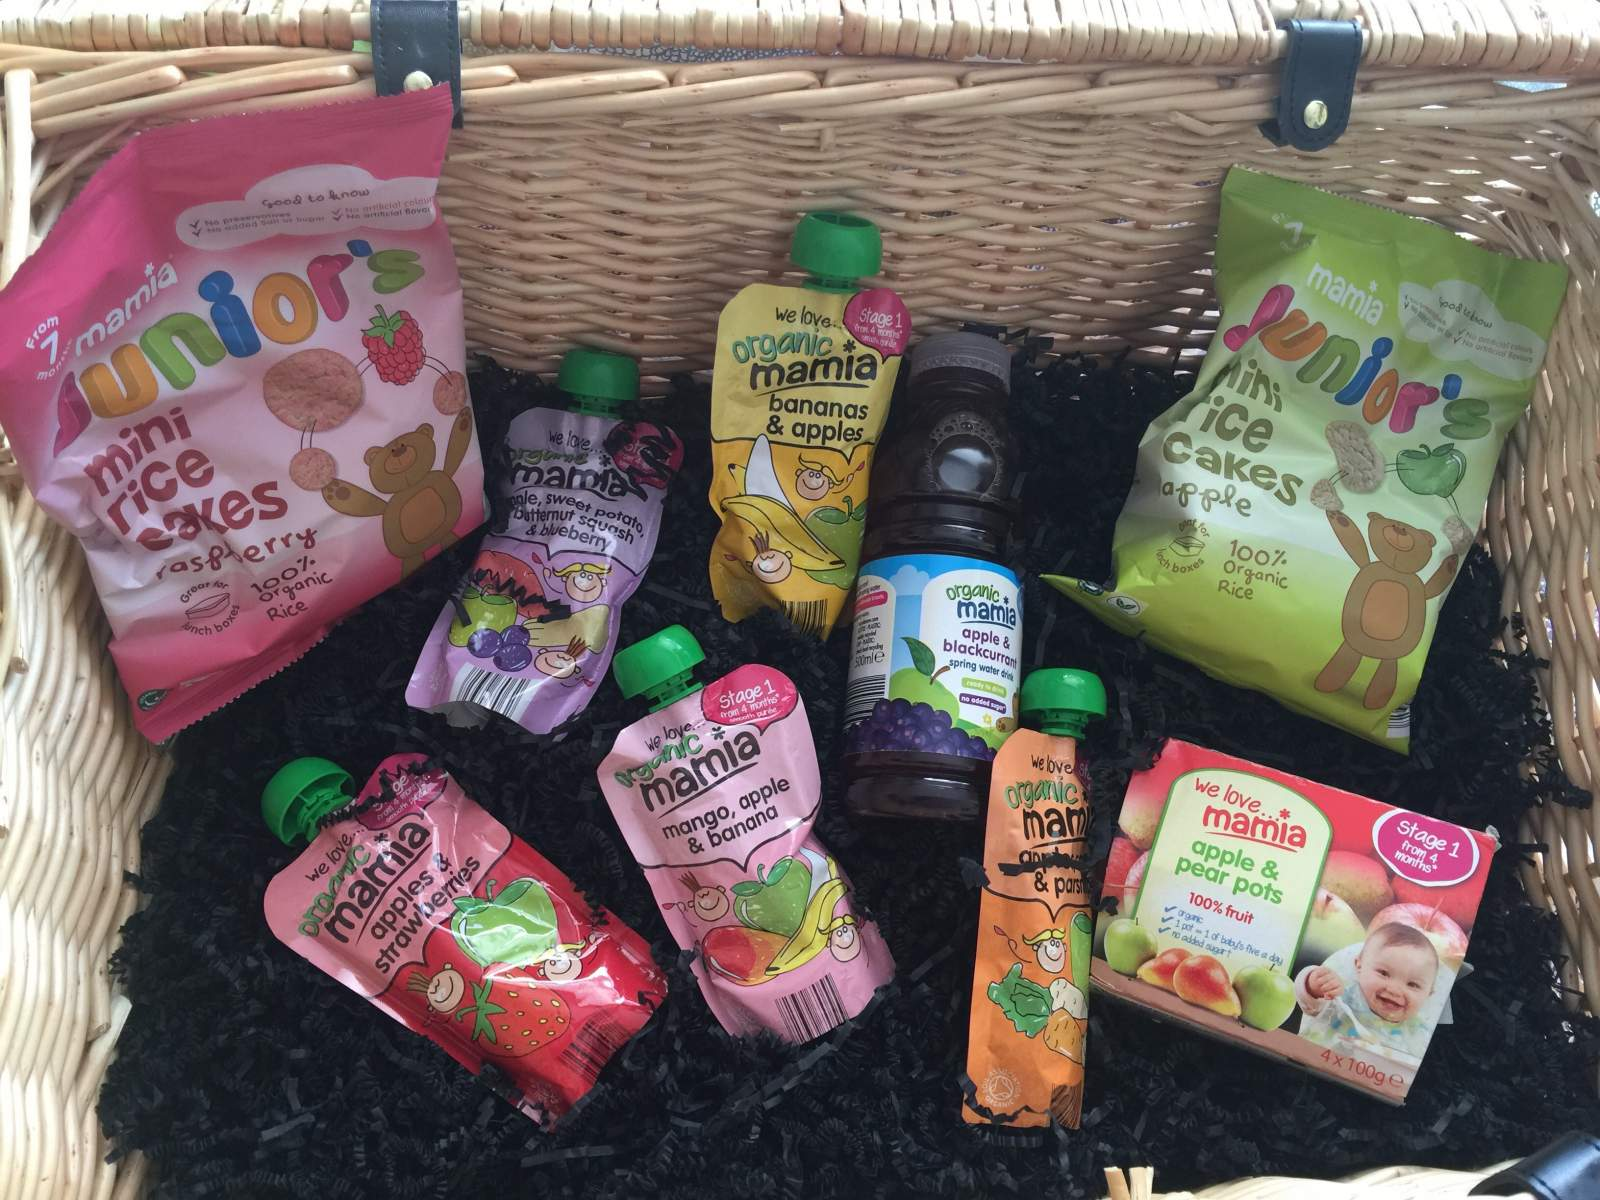 picnic hamper of Aldi Mamia products